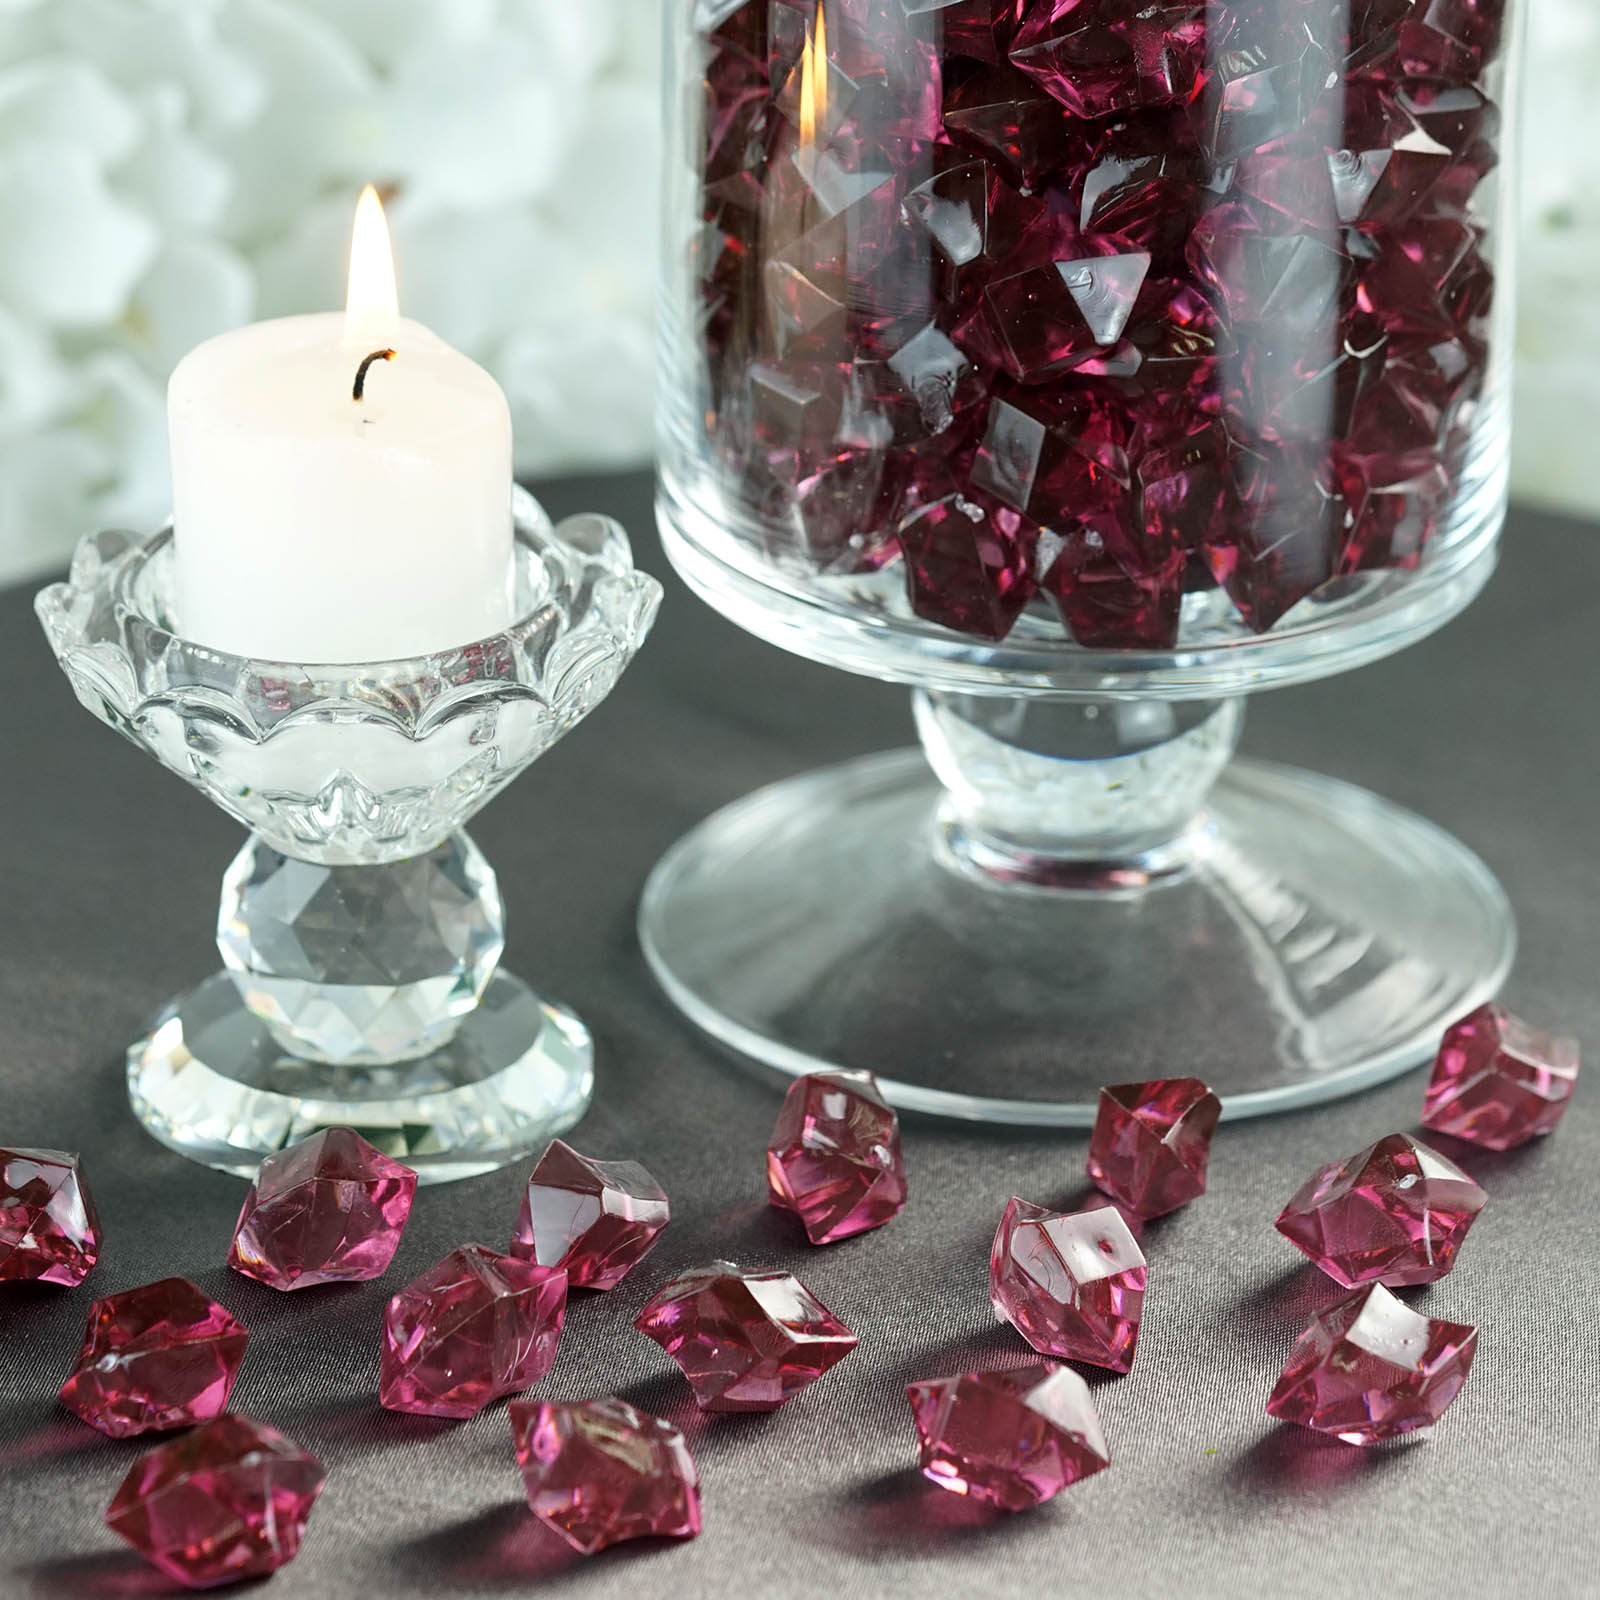 300-Acrylic-Ice-CRYSTAL-LIKE-Pieces-Wedding-Centerpieces-Decorations-Supplies thumbnail 26